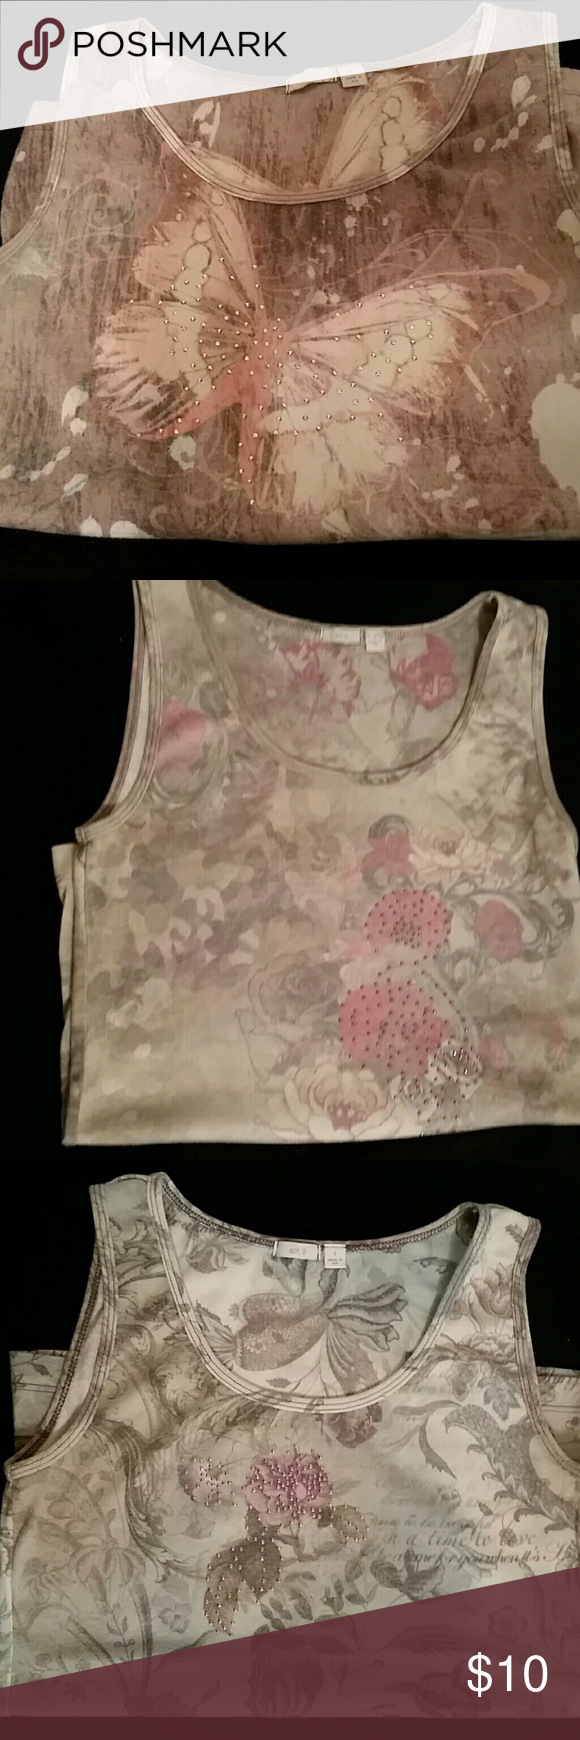 Embellished tank tops - 3 tops 3 really cute embellished tank tops. Tasteful rhinestones give these tank tops the flare you will love. All are in very good to like new condition. No stains or tears. Apt. 9 Tops Tank Tops